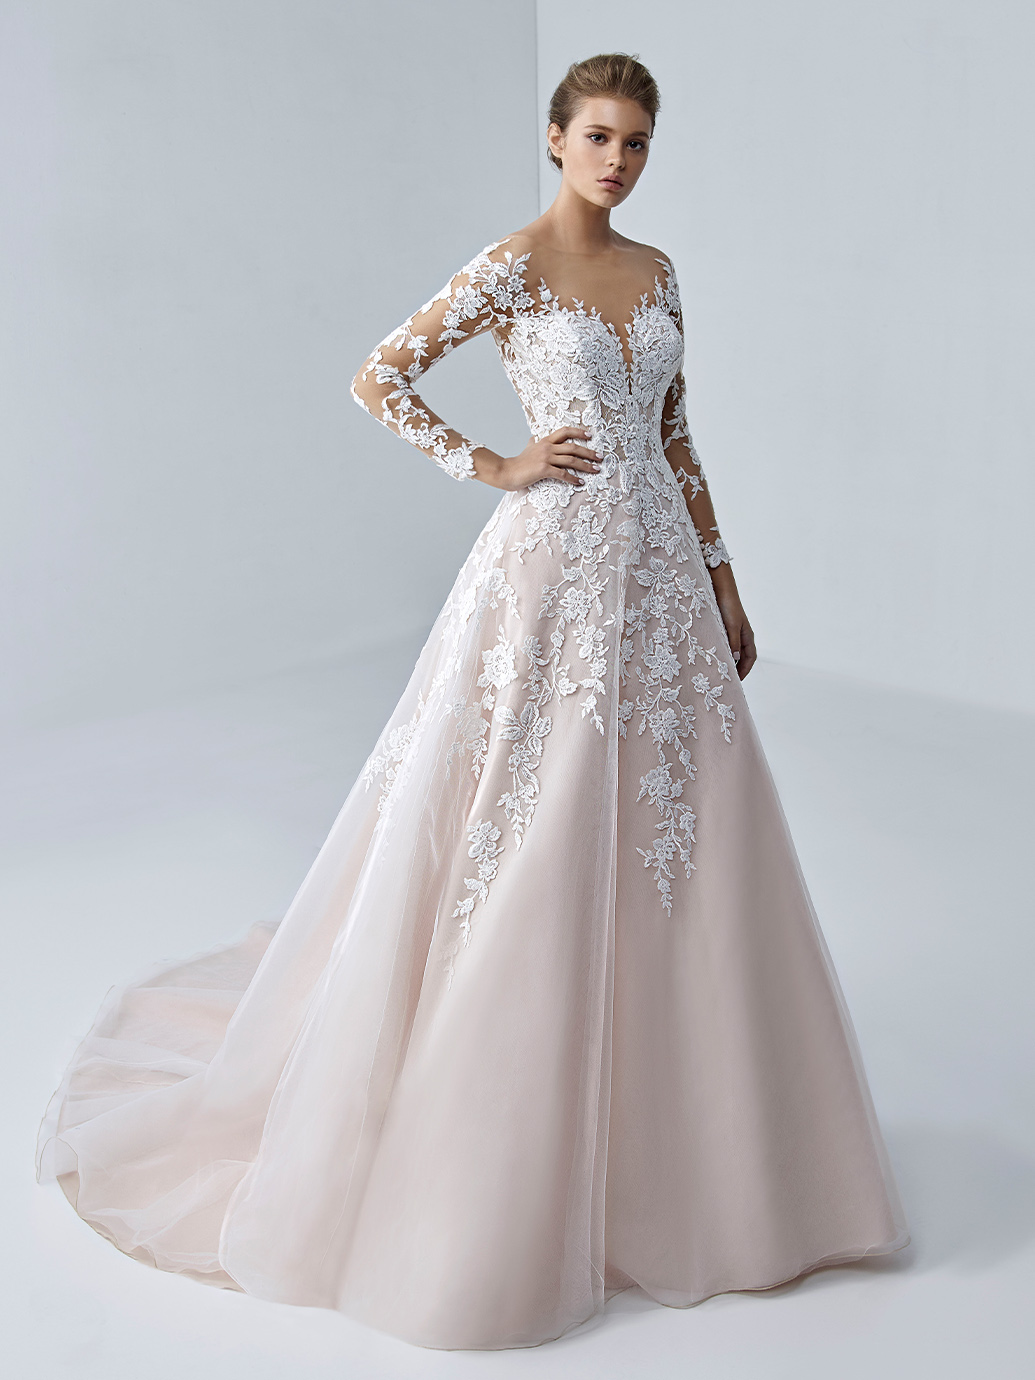 étoile-by-enzoani-2021-Dress-Finder-Arabelle